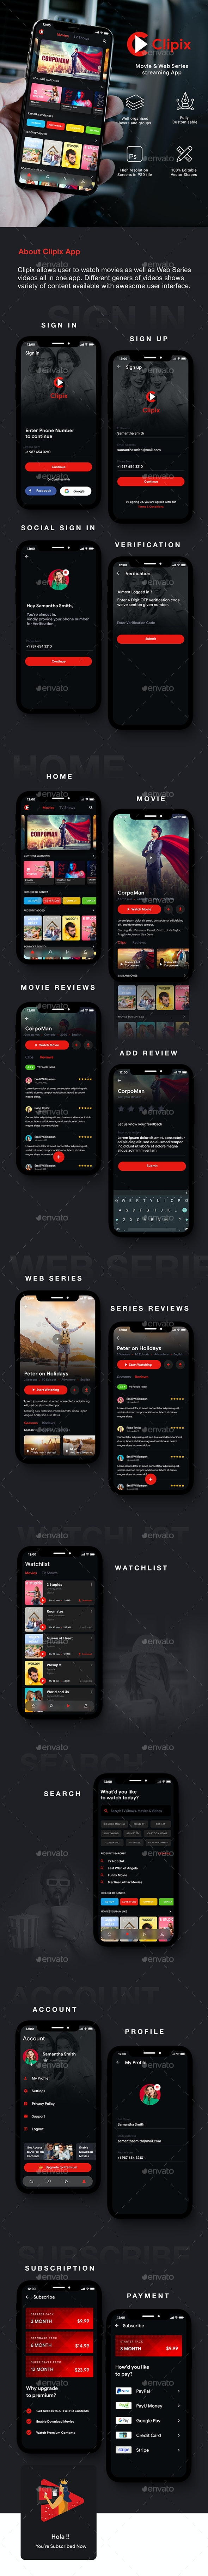 Movie, TV show & Web Series Streaming App UI Kit | Clipix - User Interfaces Web Elements